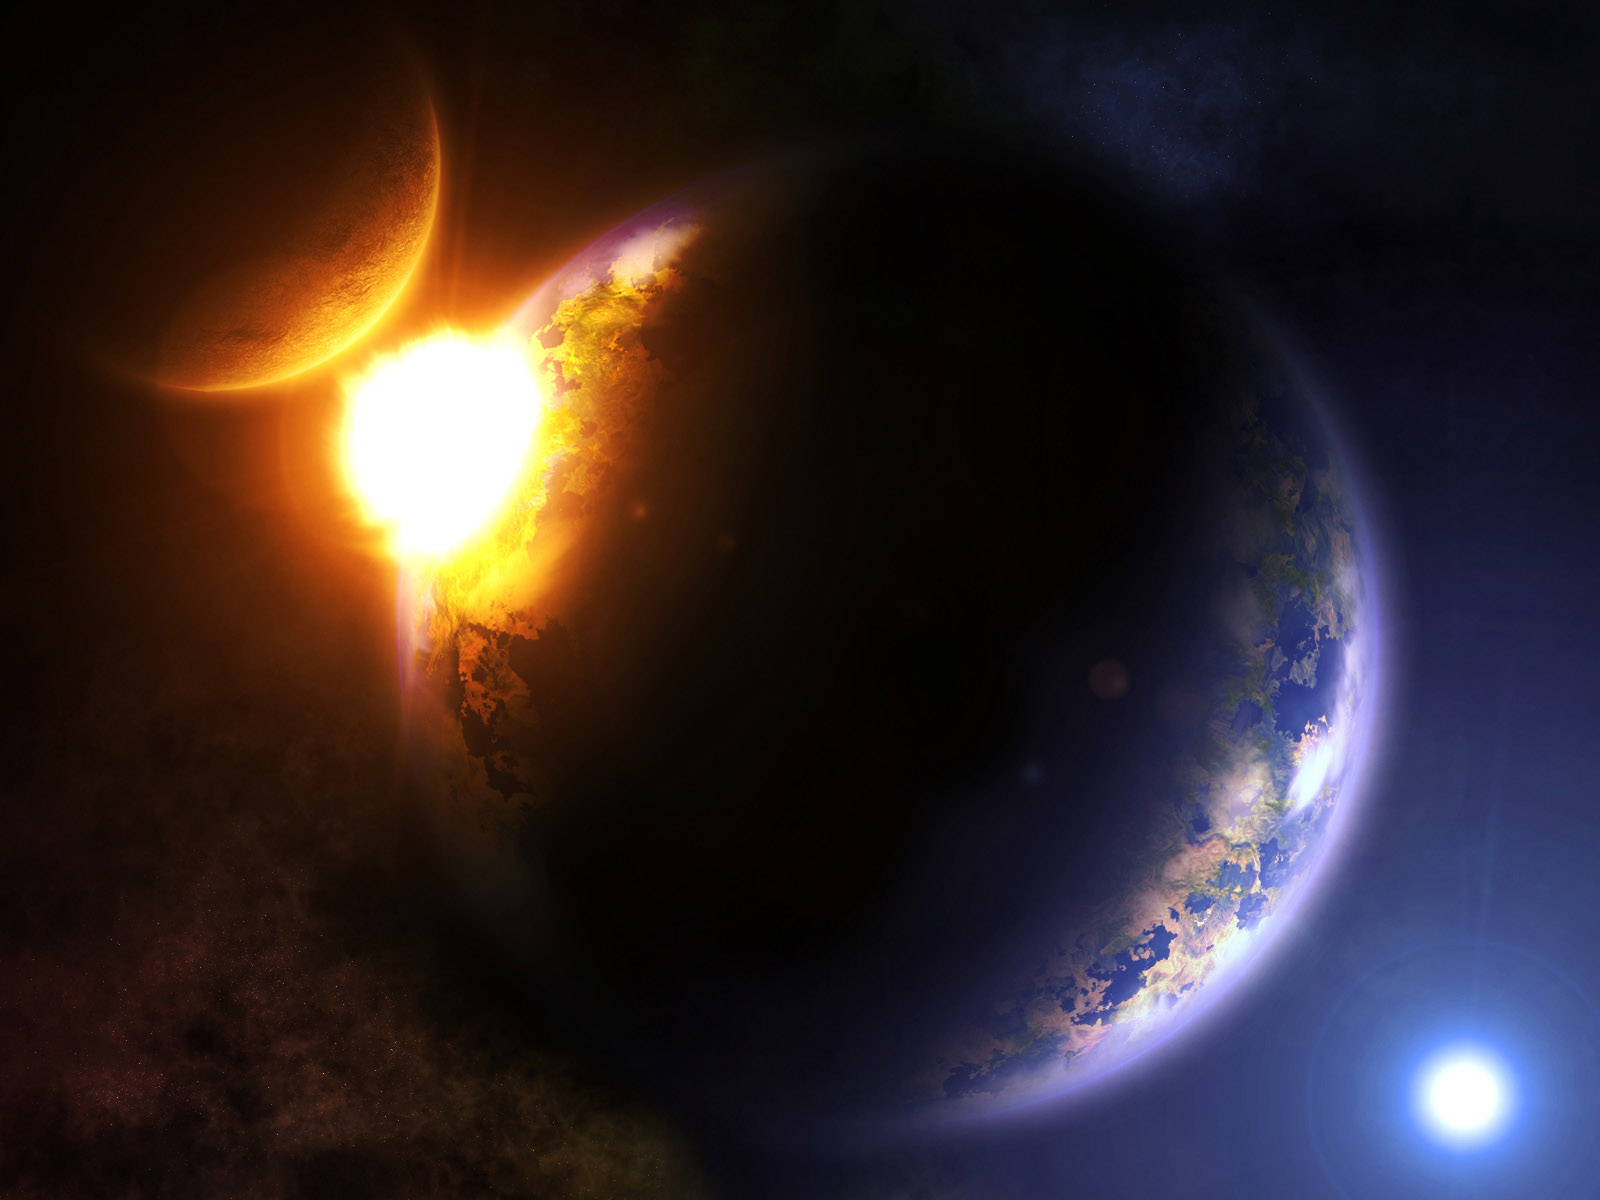 Sci Fi - Explosion  - Universe - Sun - Earth - Space Wallpaper